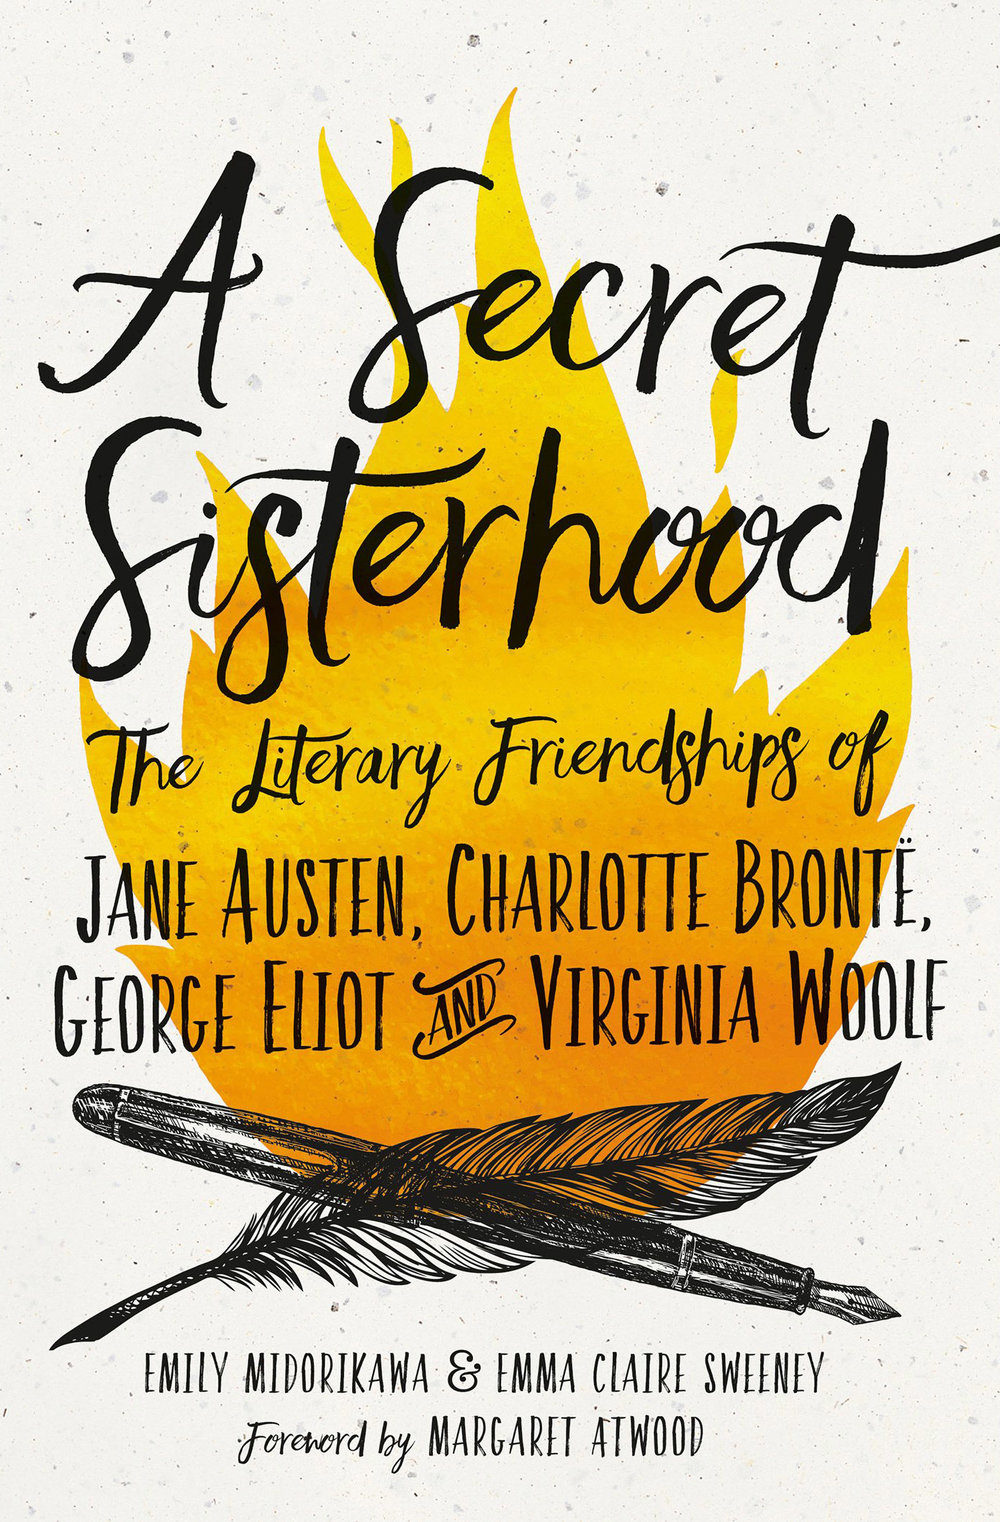 Cover Design: Jackie Shepherd